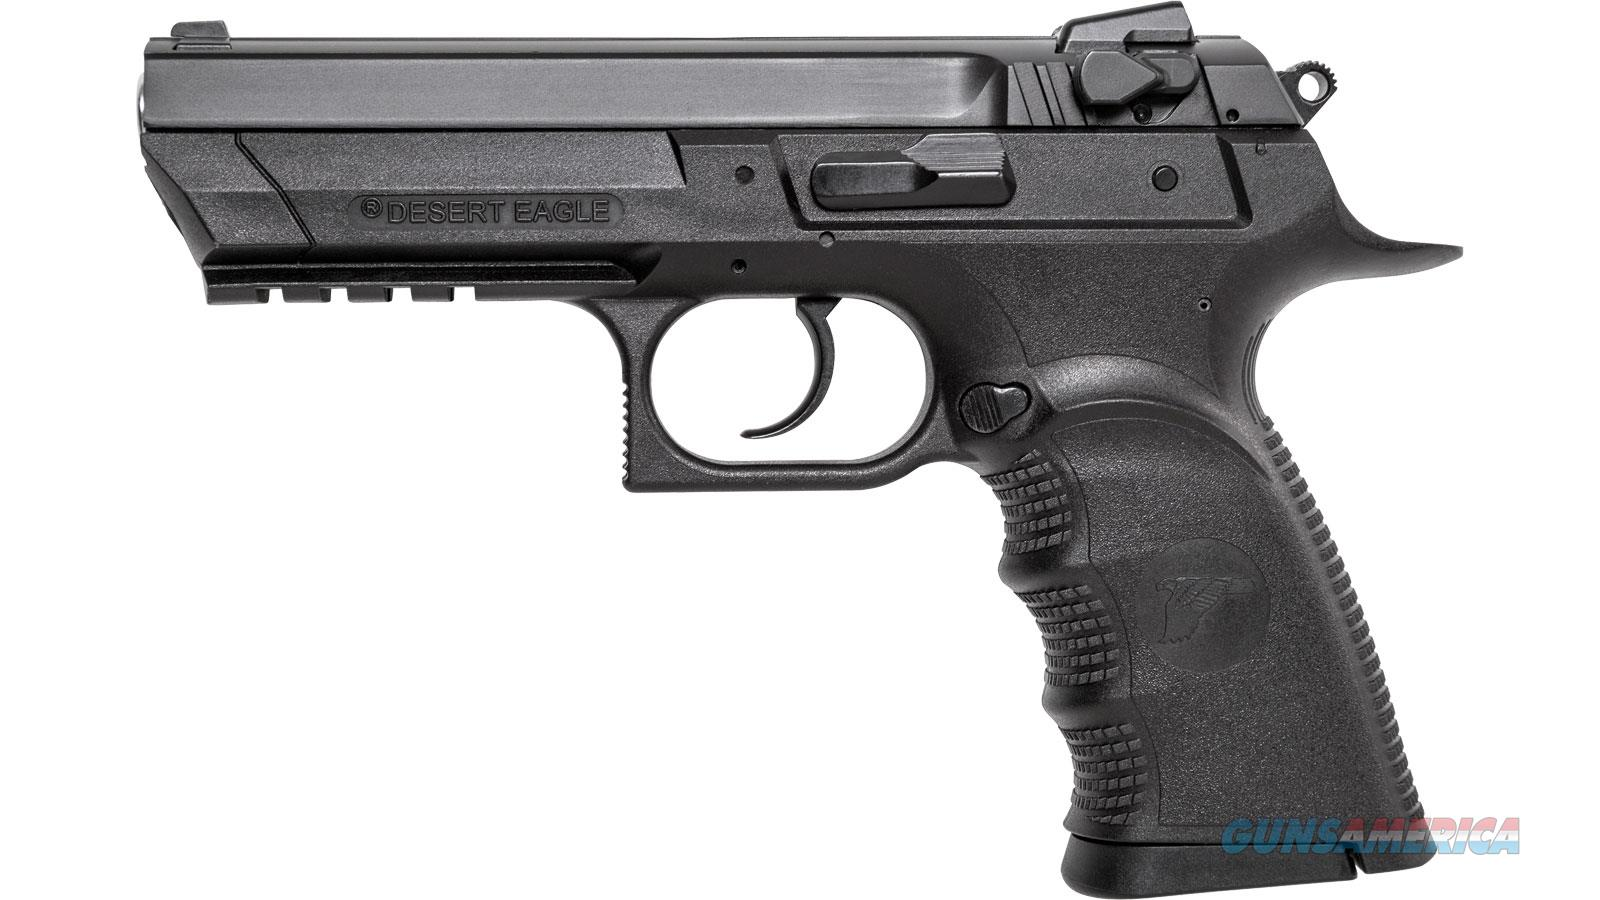 MARTIN ARCHERY BABY DESERT EAGLE III 9MM BE99153RL  Guns > Pistols > Magnum Research Pistols